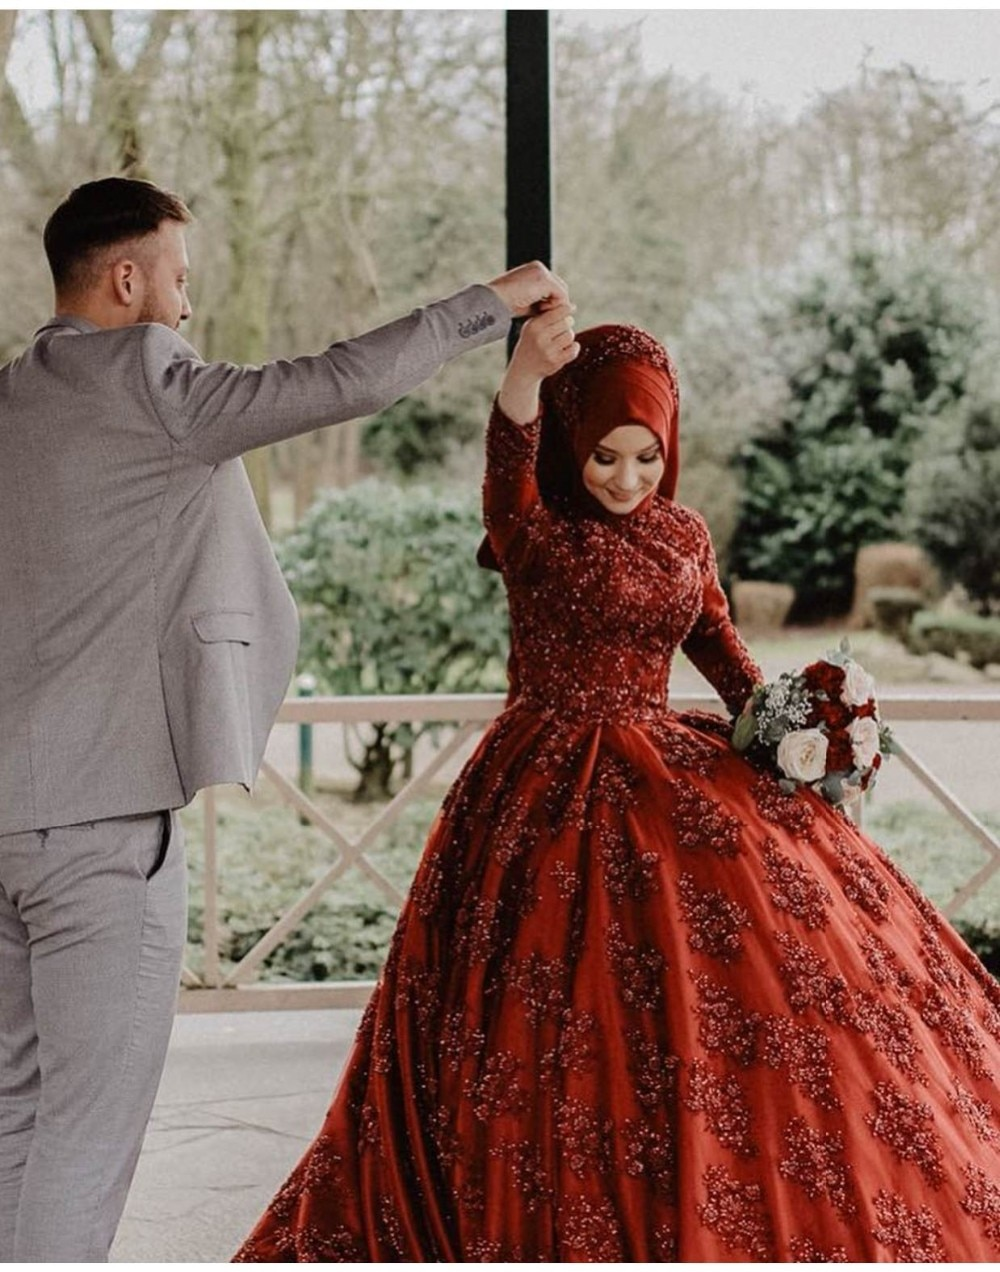 Ball Gown Abaya Muslim Wedding Dresses 2019 Luxury Beaded Lace Appliques Bride Dresses Prom Gowns